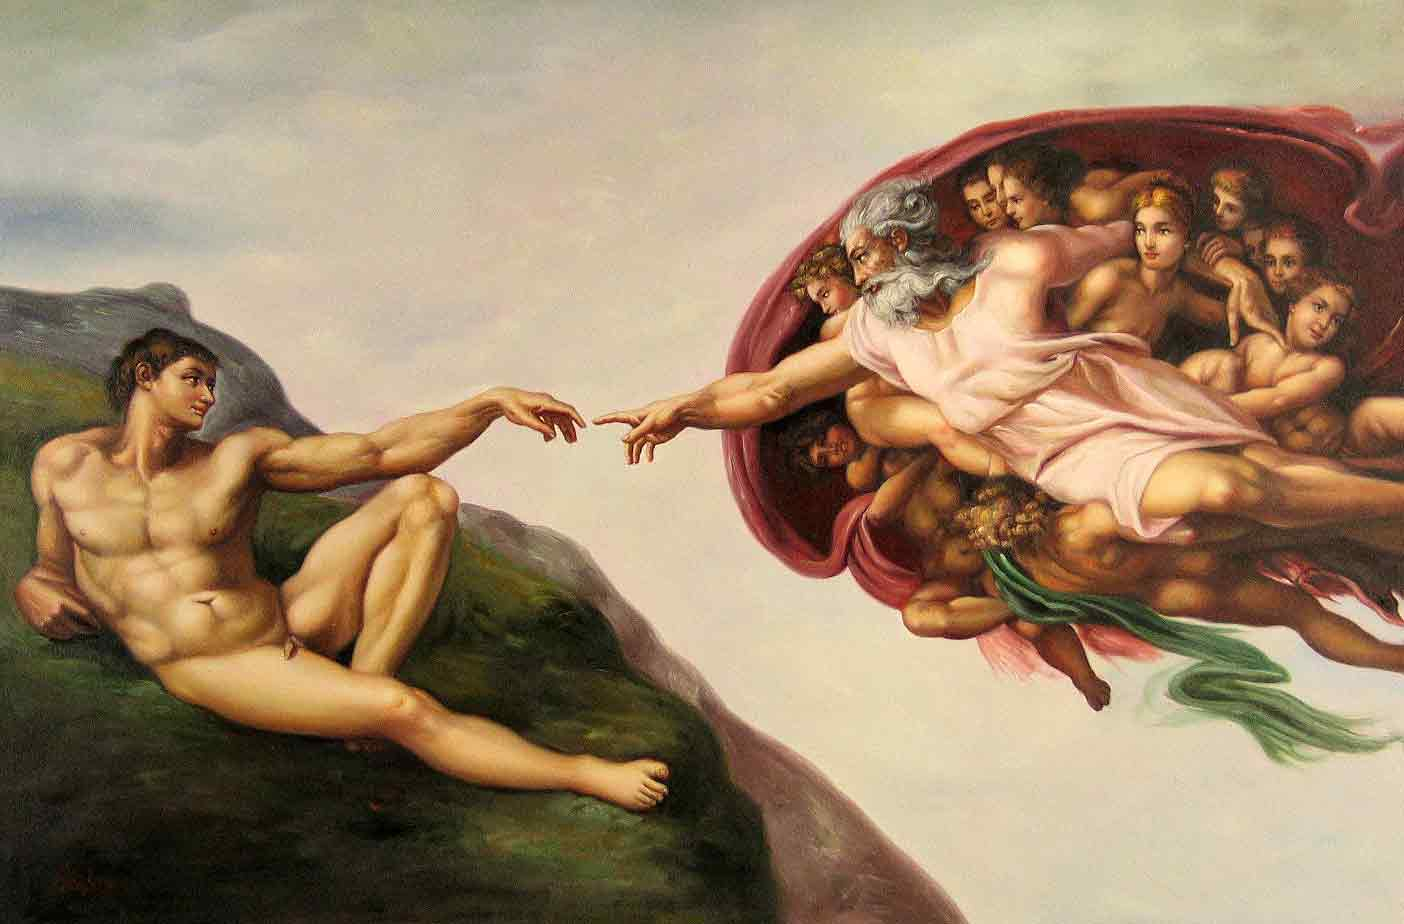 creation-of-adam-by-michelangelo.jpg